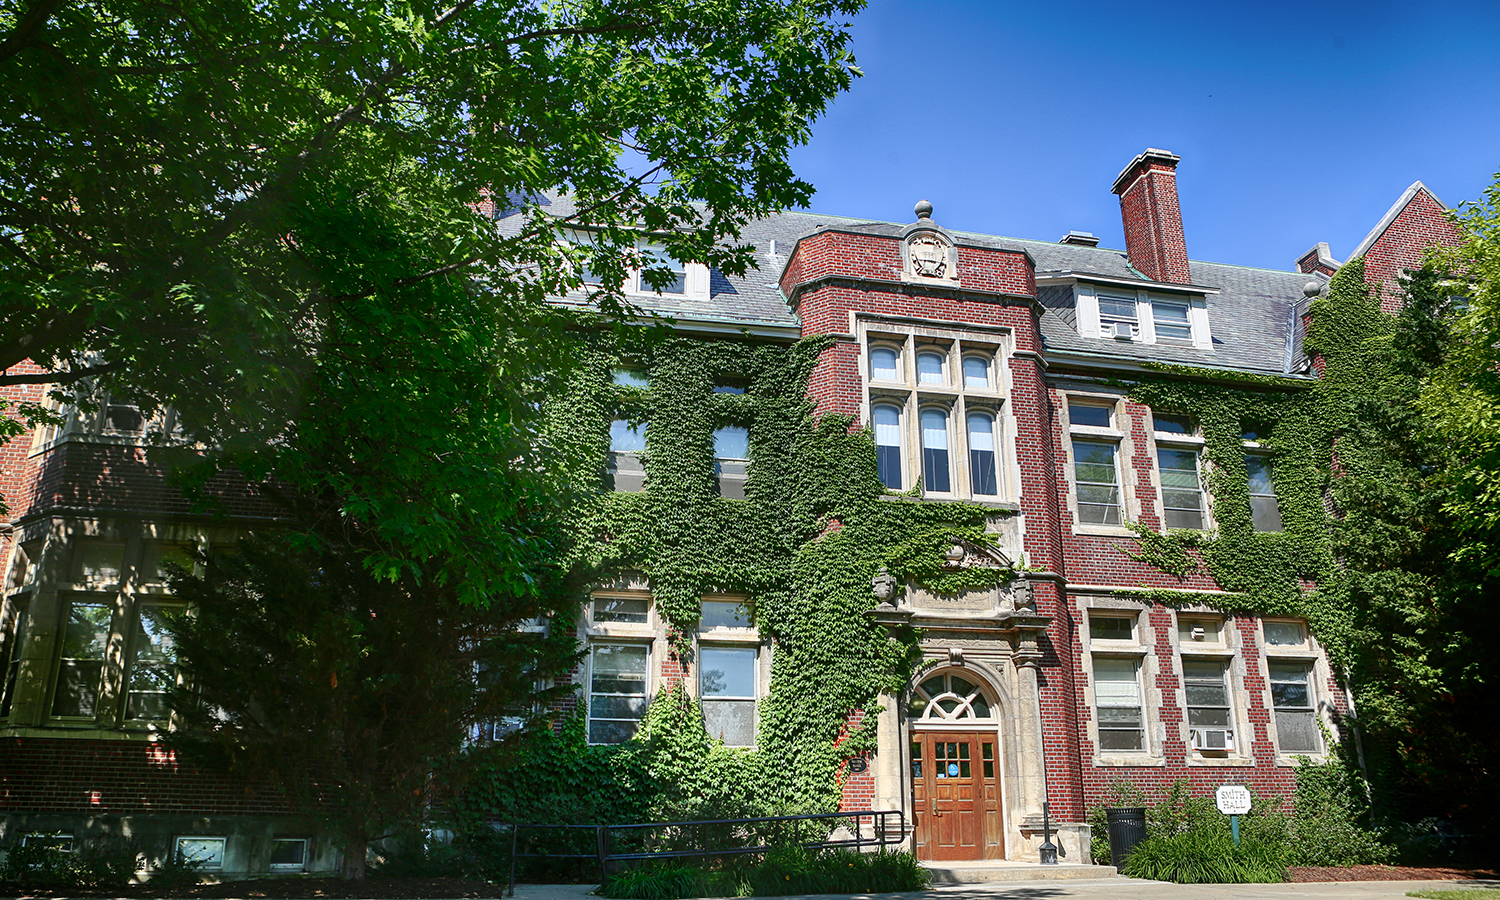 Williams Hall was built in 1909 by architect Arthur Nash, and named after drowning victim Charles Rose Williams. Originally built as a gymnasium complete with a pool, and later renovated to hold classrooms, Williams Hall now holds the Offices of the Deans, the Writing and Rhetoric department, and a Language lab.